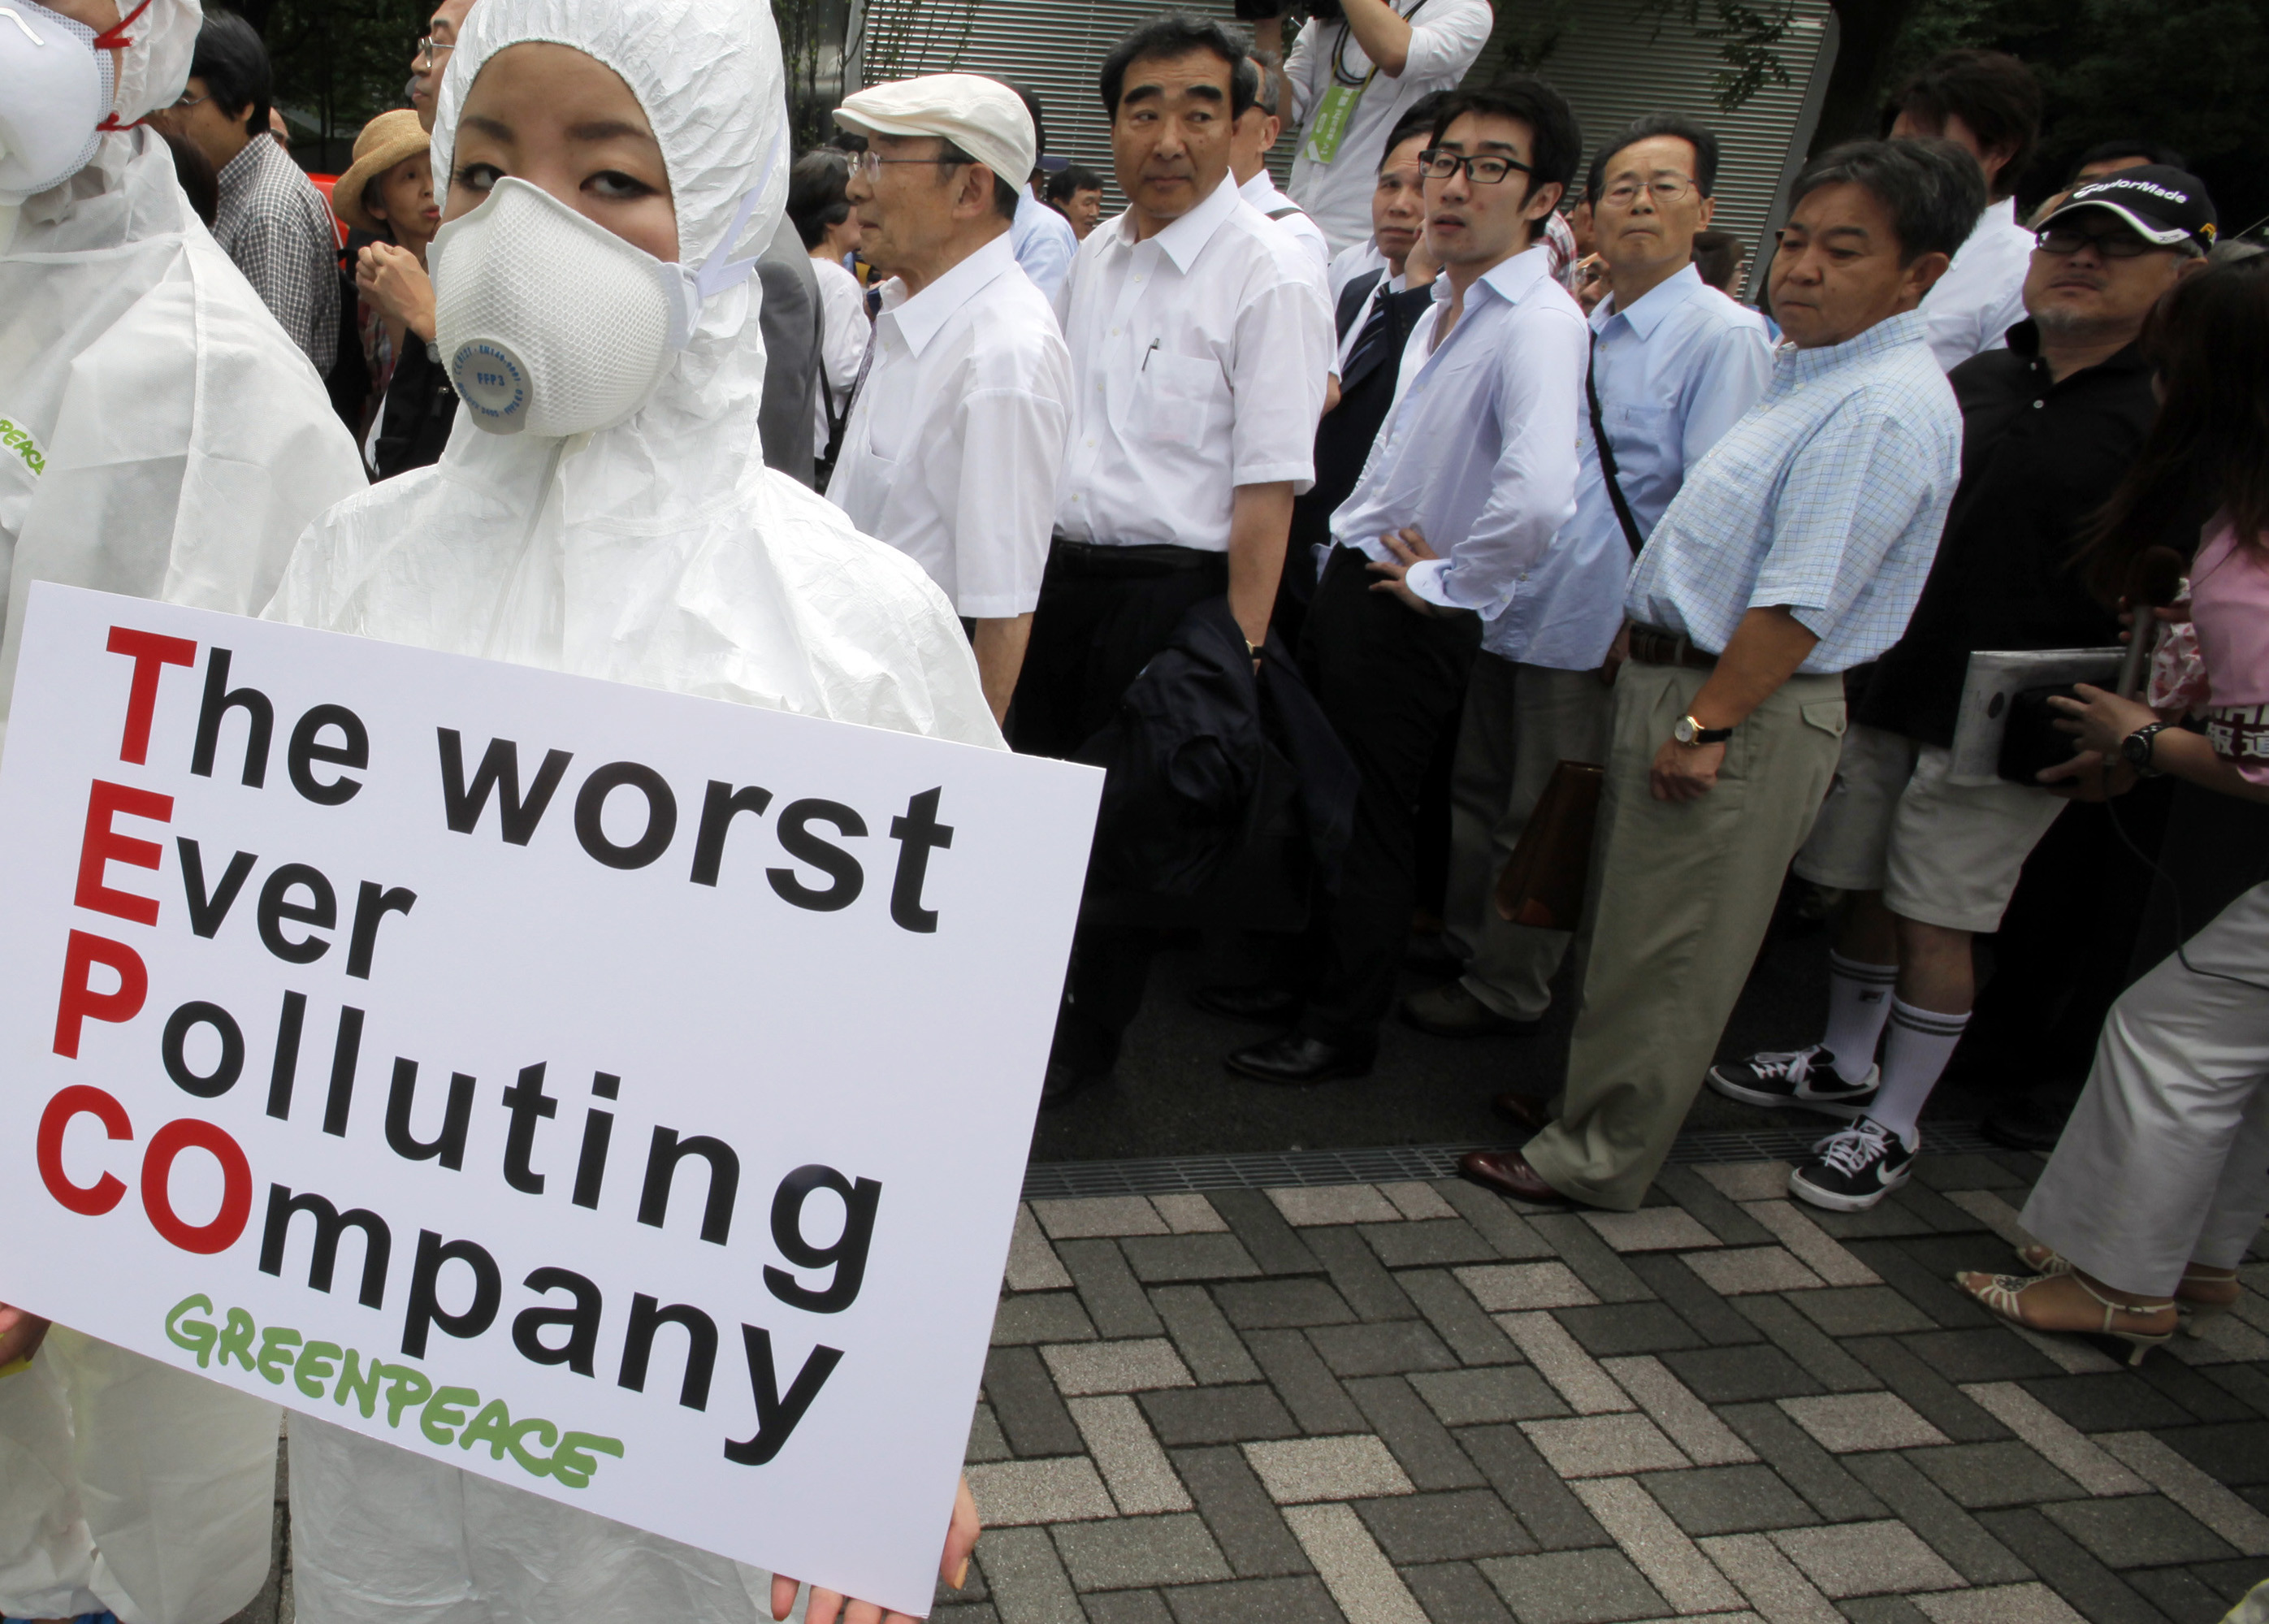 A Greenpeace protester wearing protective gear holds up a banner as stockholders arrive for an annual shareholders' meeting of Tokyo Electric Power Co. in Tokyo in June 2011. | AP